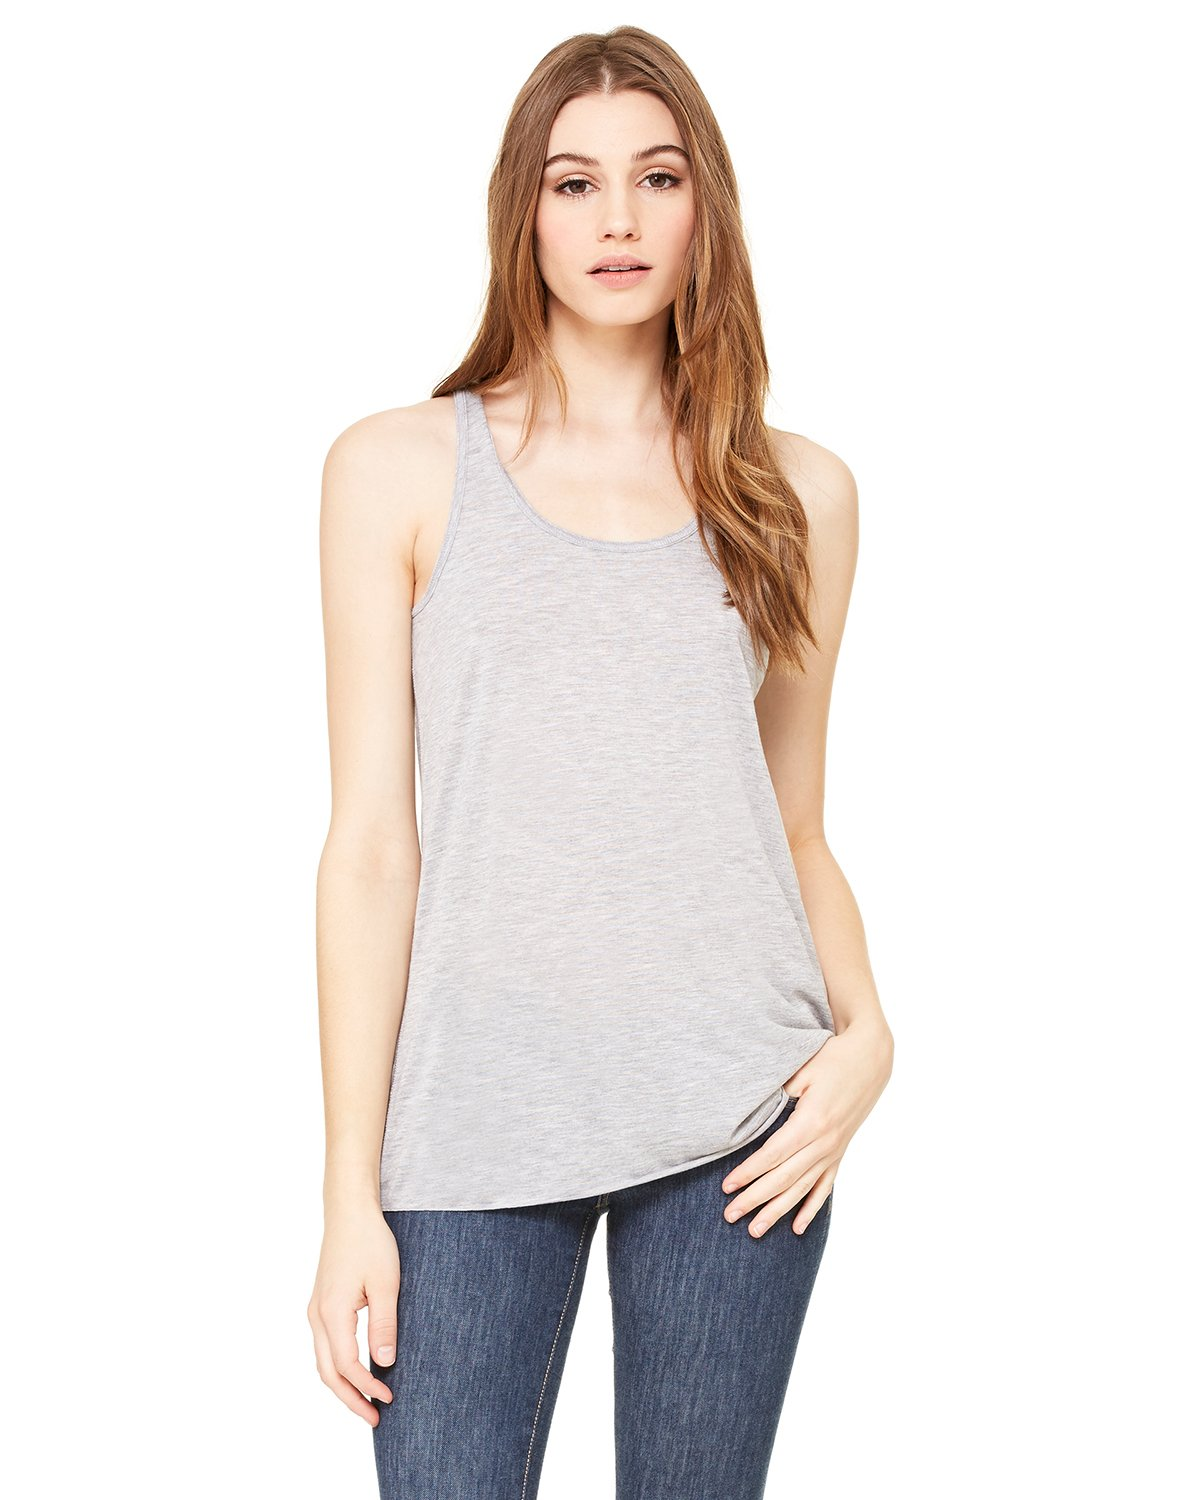 Bella + Canvas - B8800 - Ladies' Flowy Racerback Tank